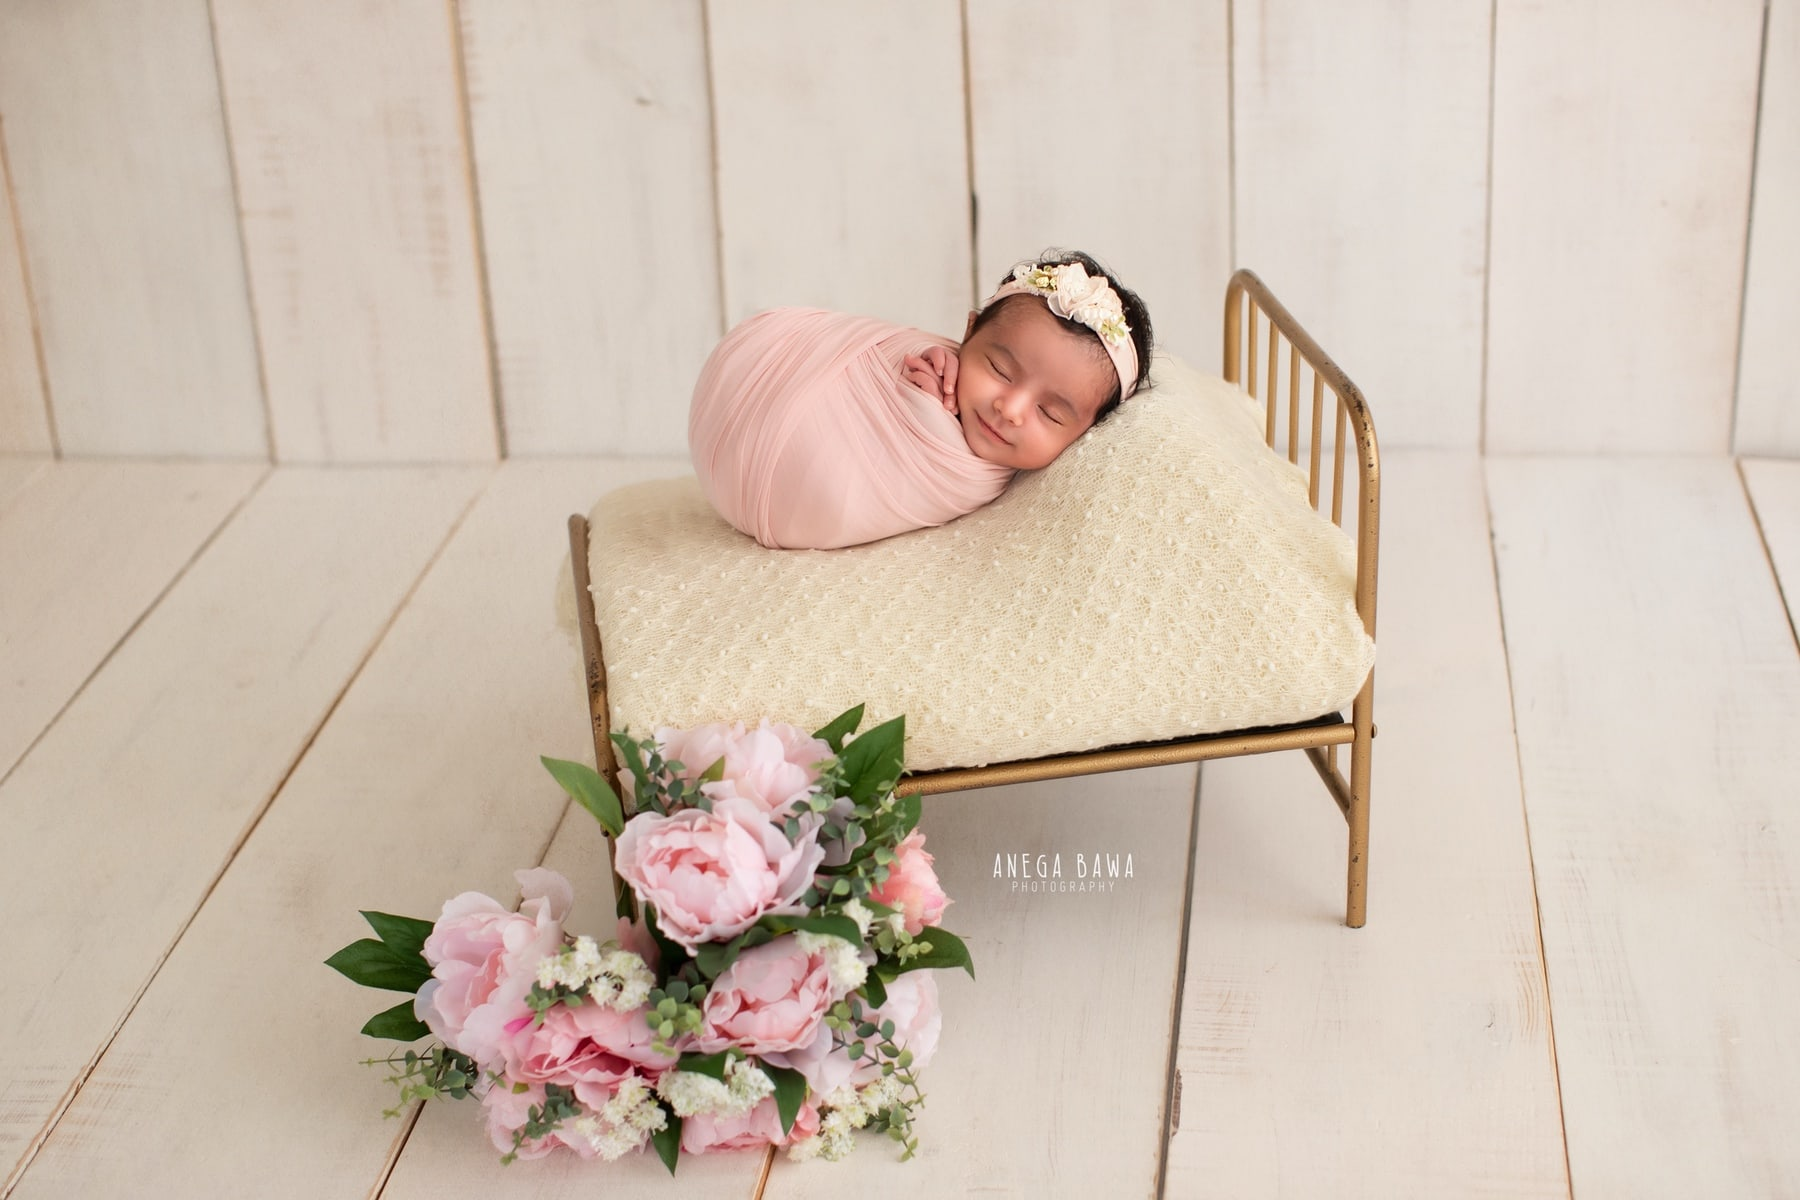 white pink floral newborn photography delhi 7 days baby boy photoshoot gurgaon anega bawa